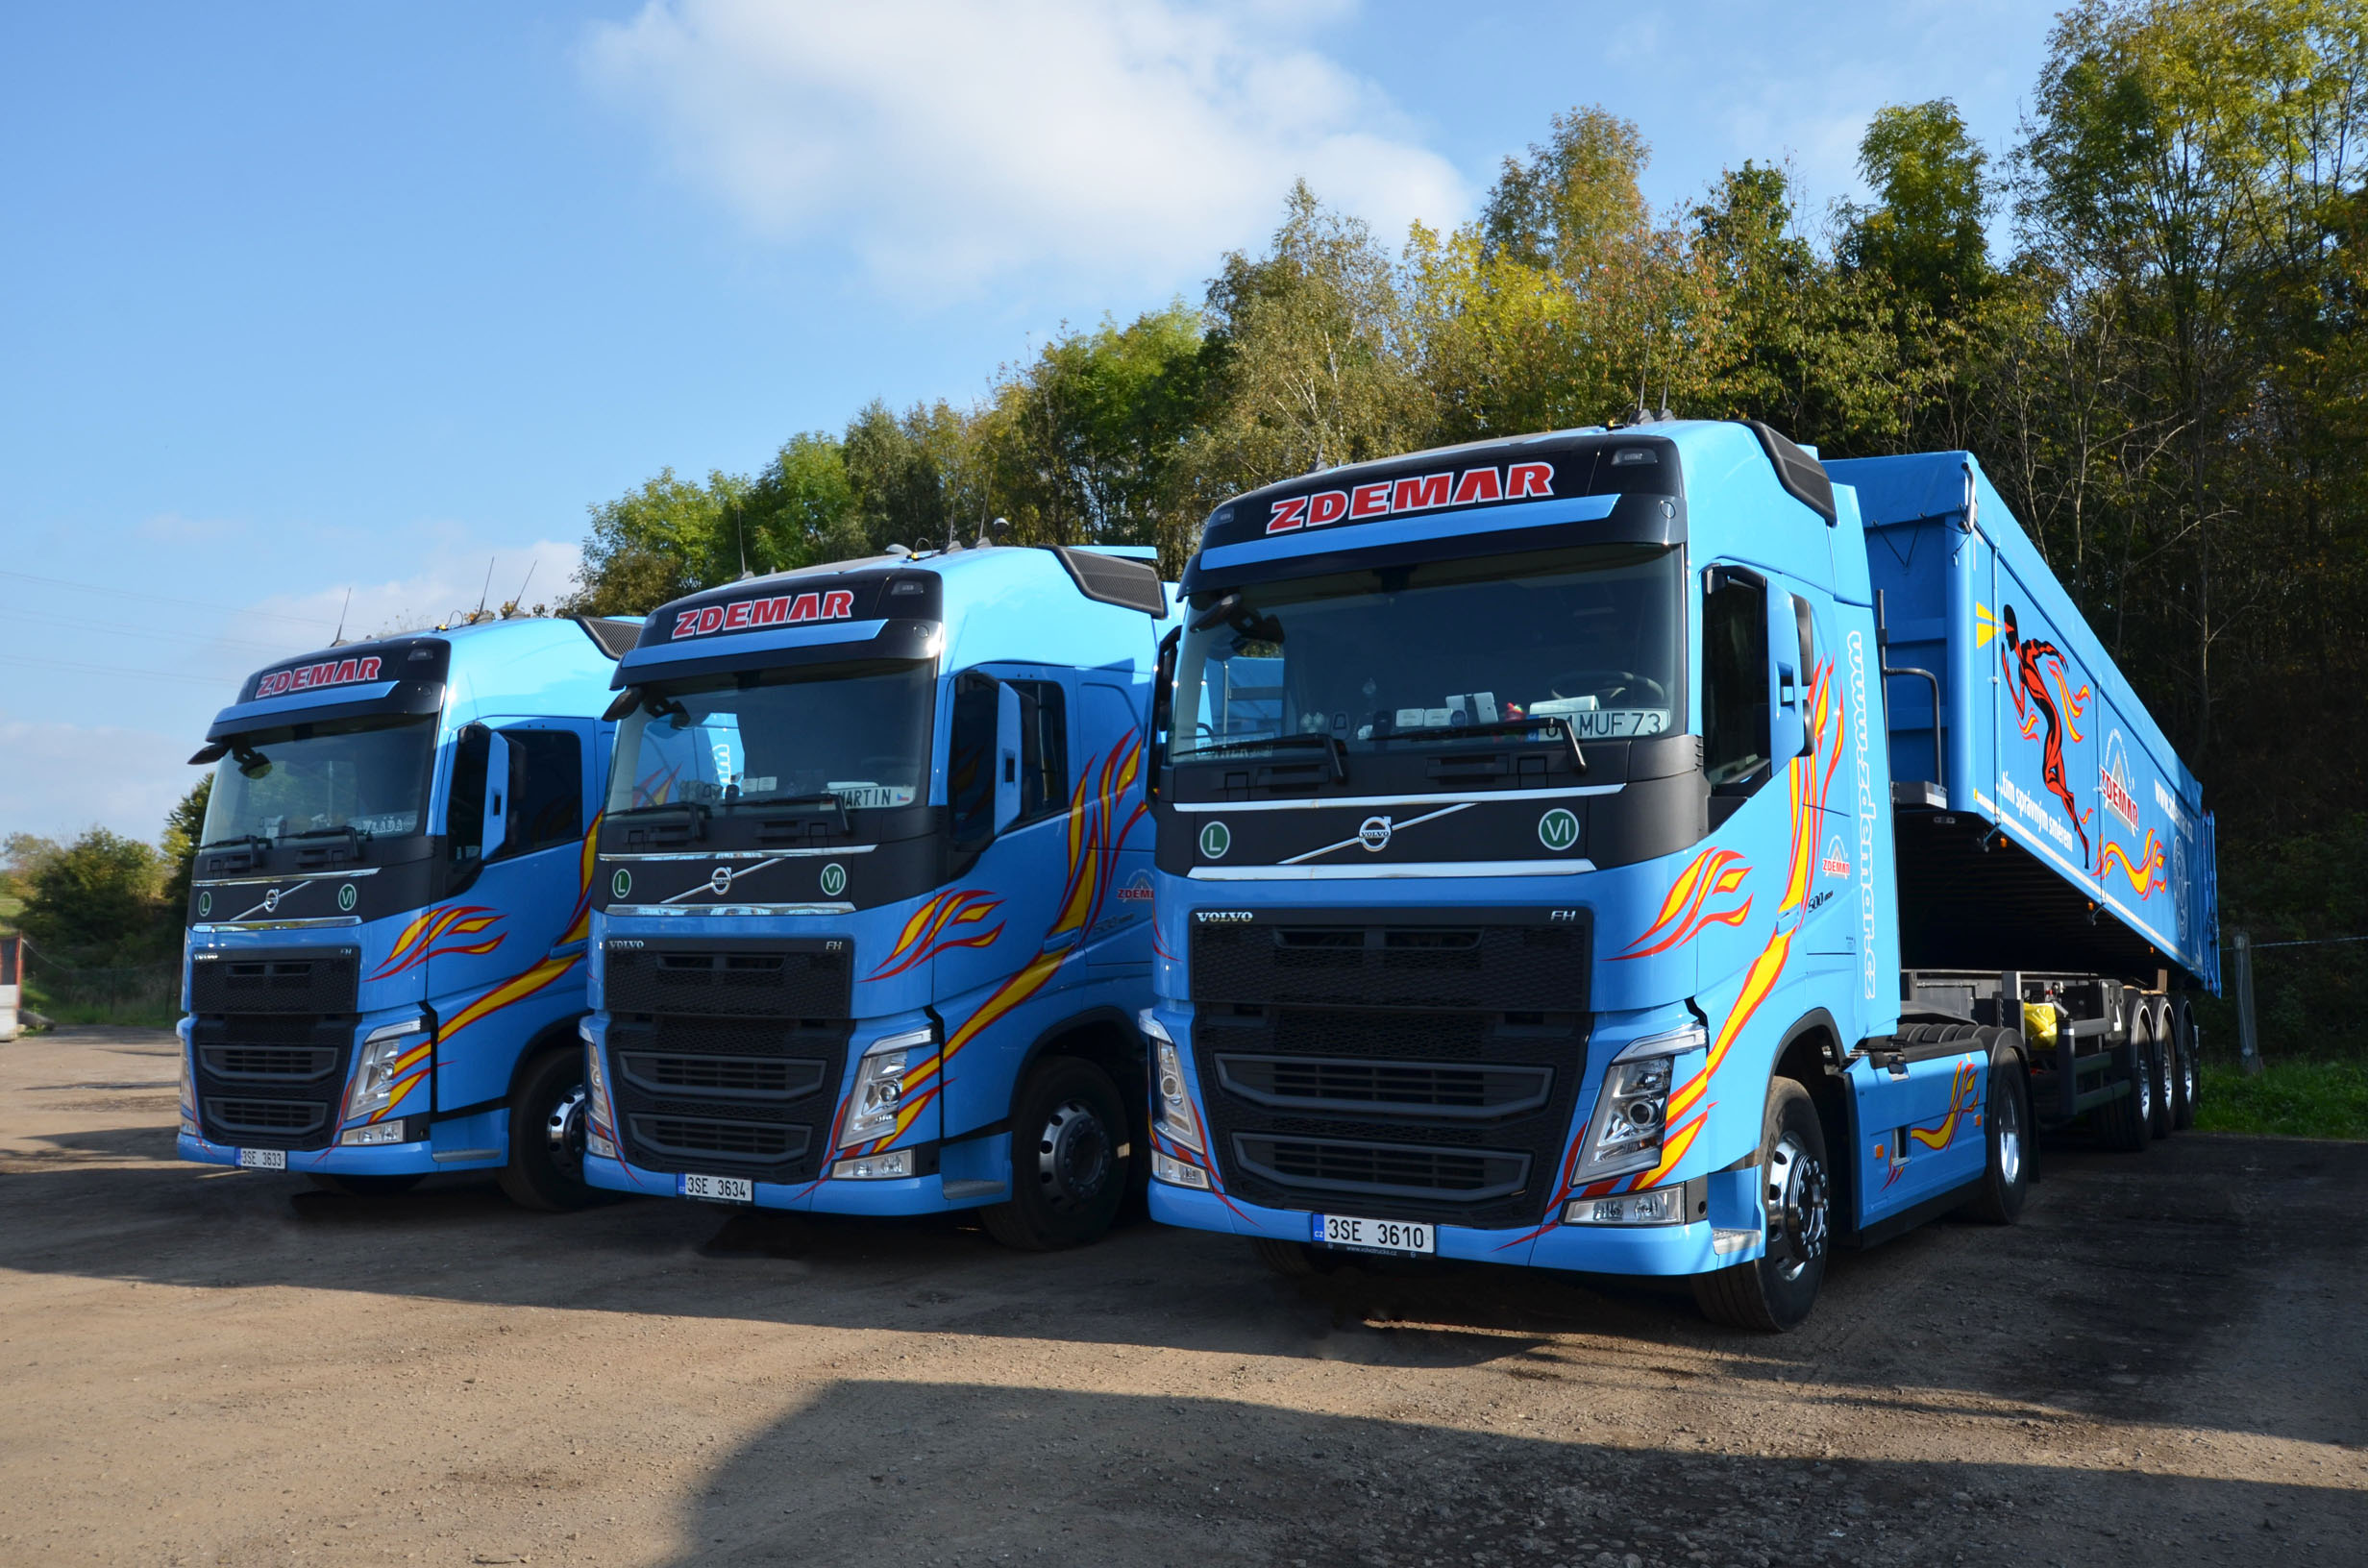 New DAF trucks